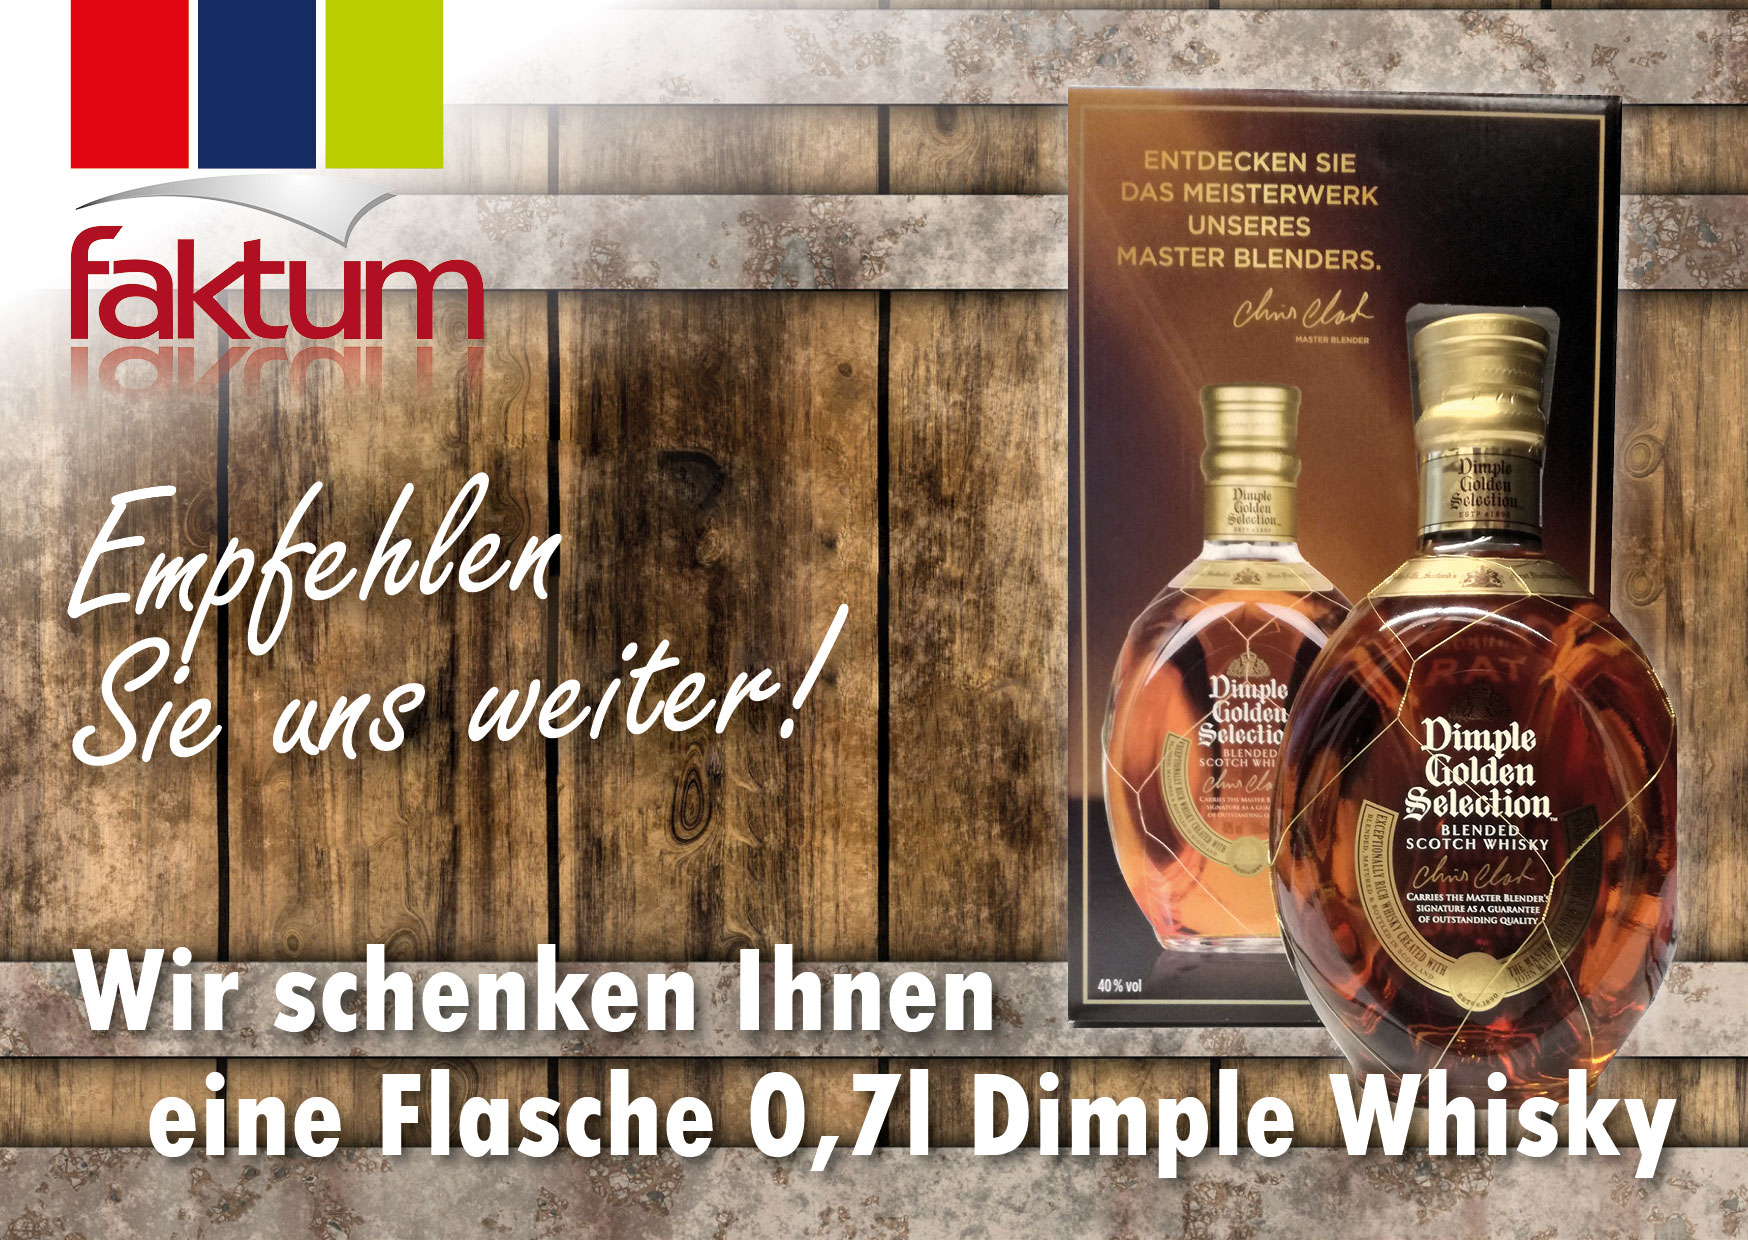 Neukundenwerbung Dimple Whisky